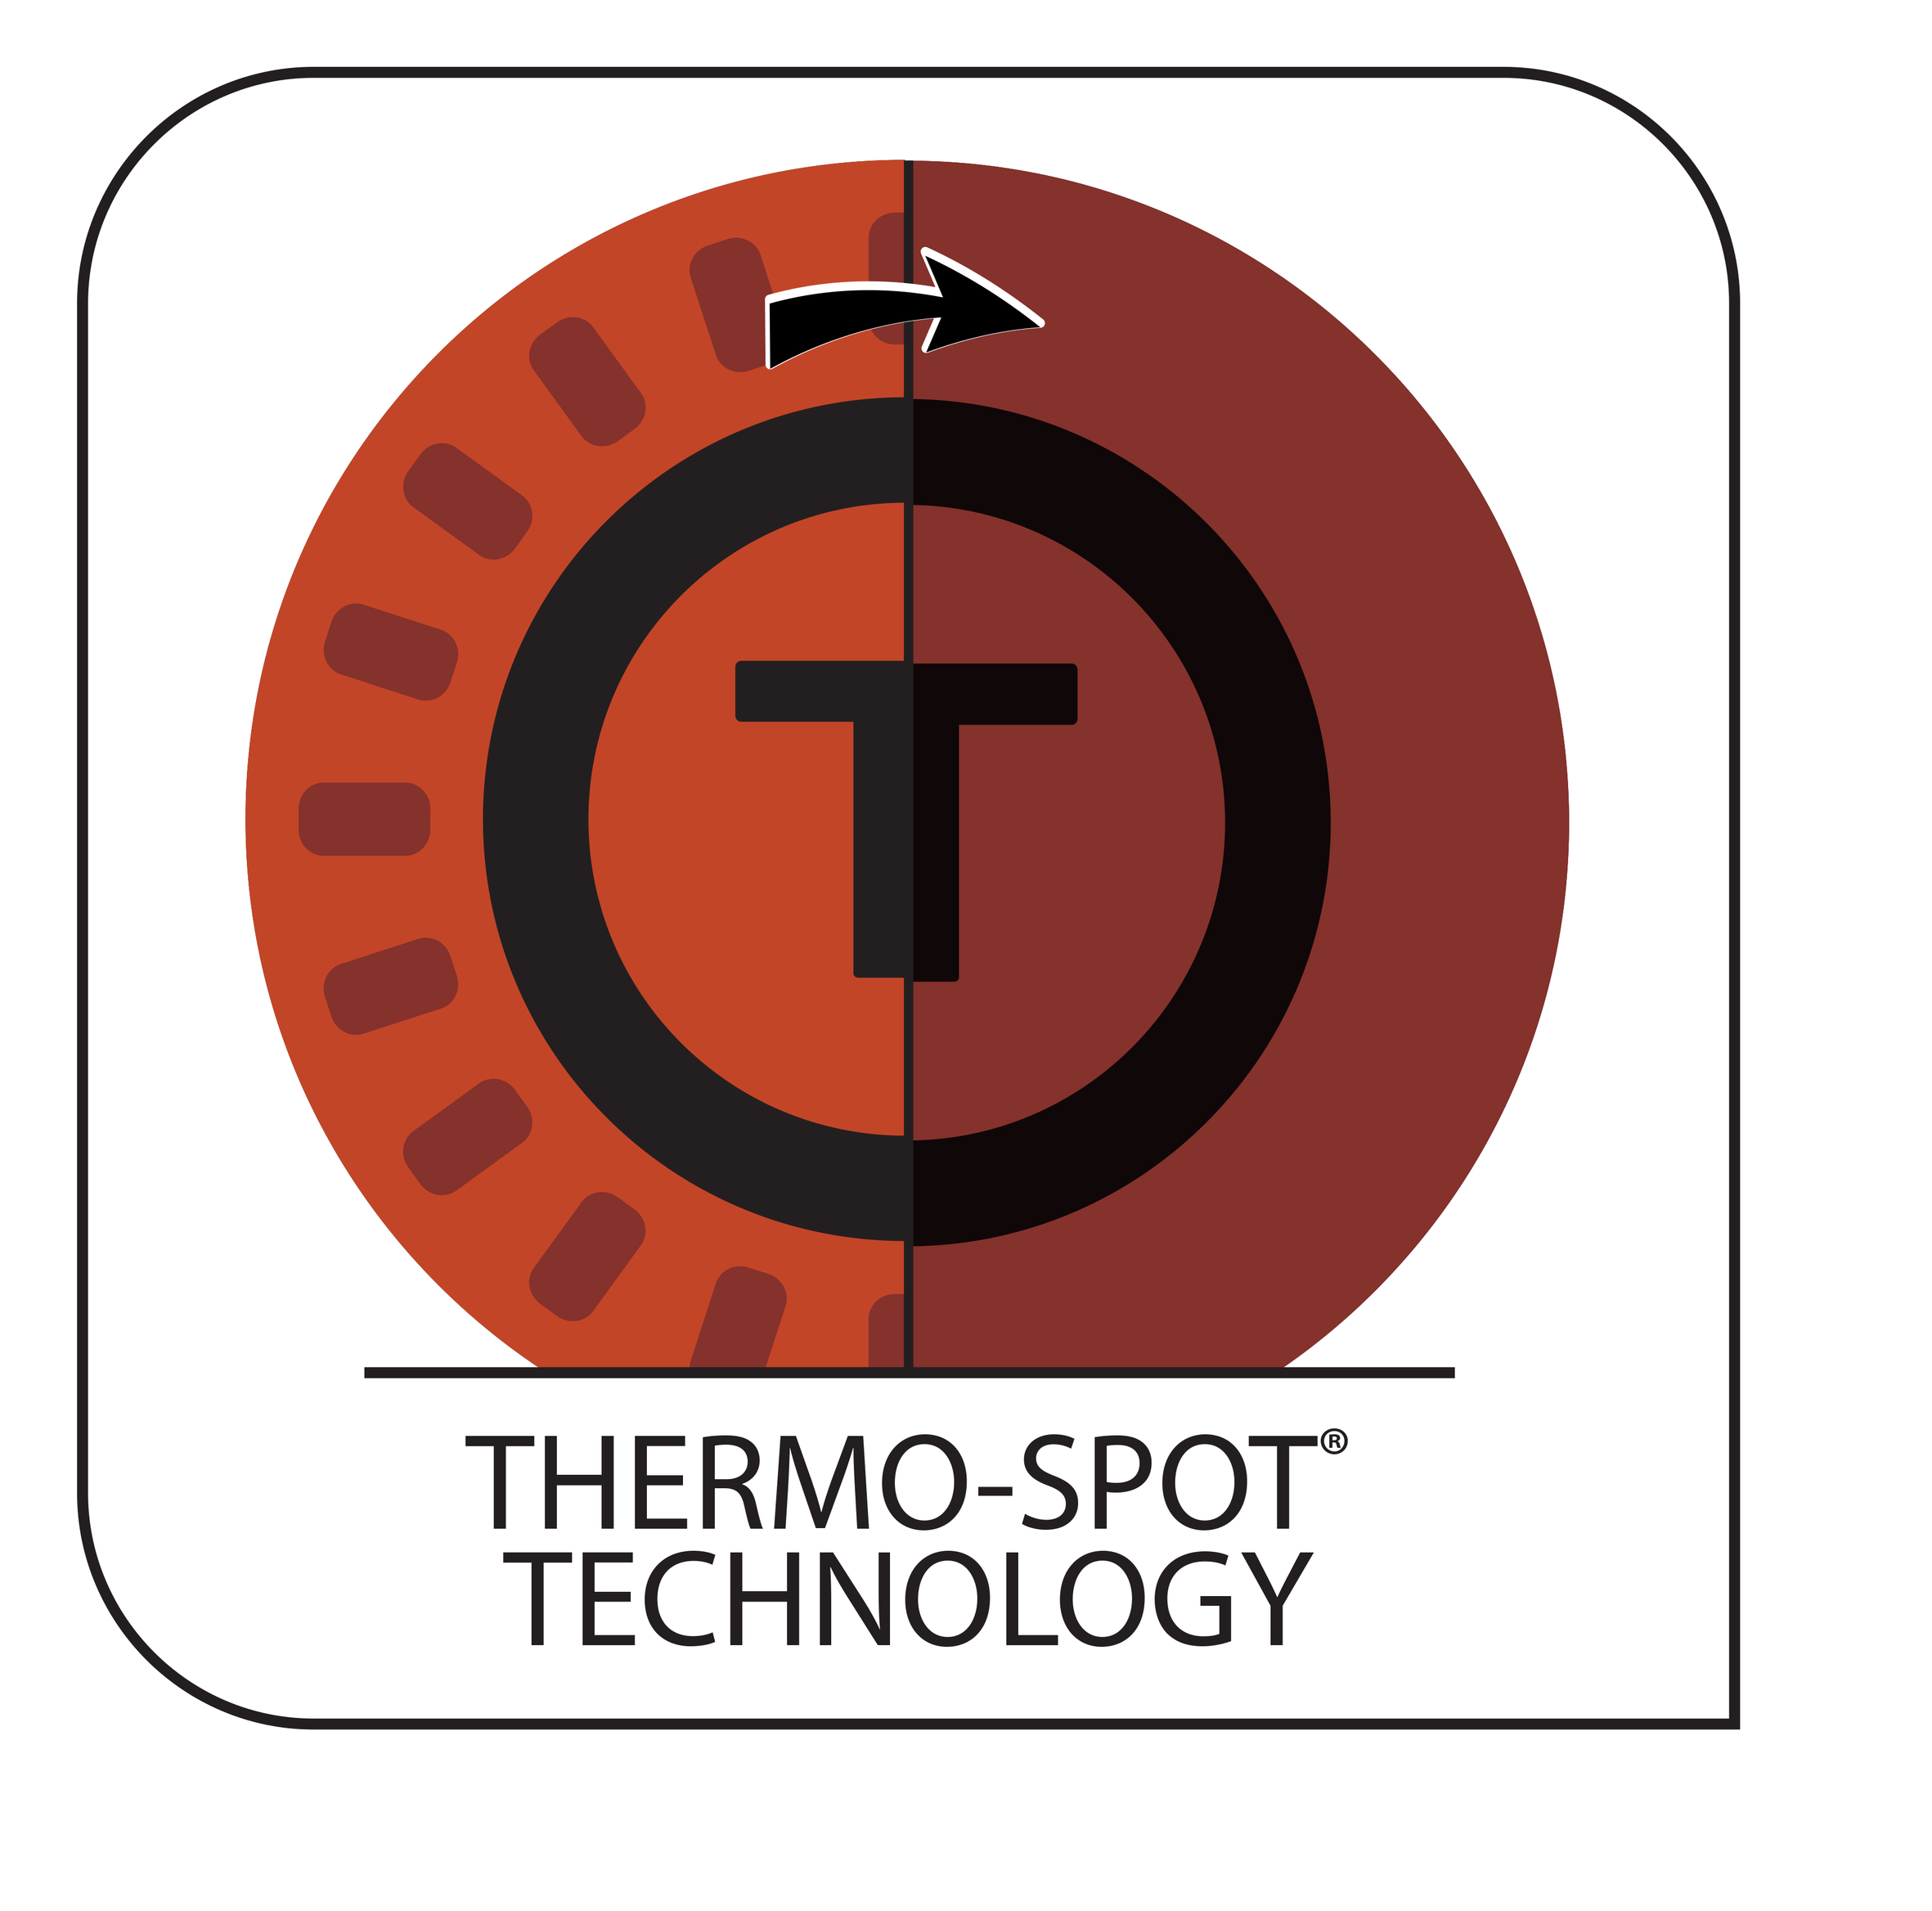 http://makow84.pl/Patelnie/Everest/Thermo%20Spot.png